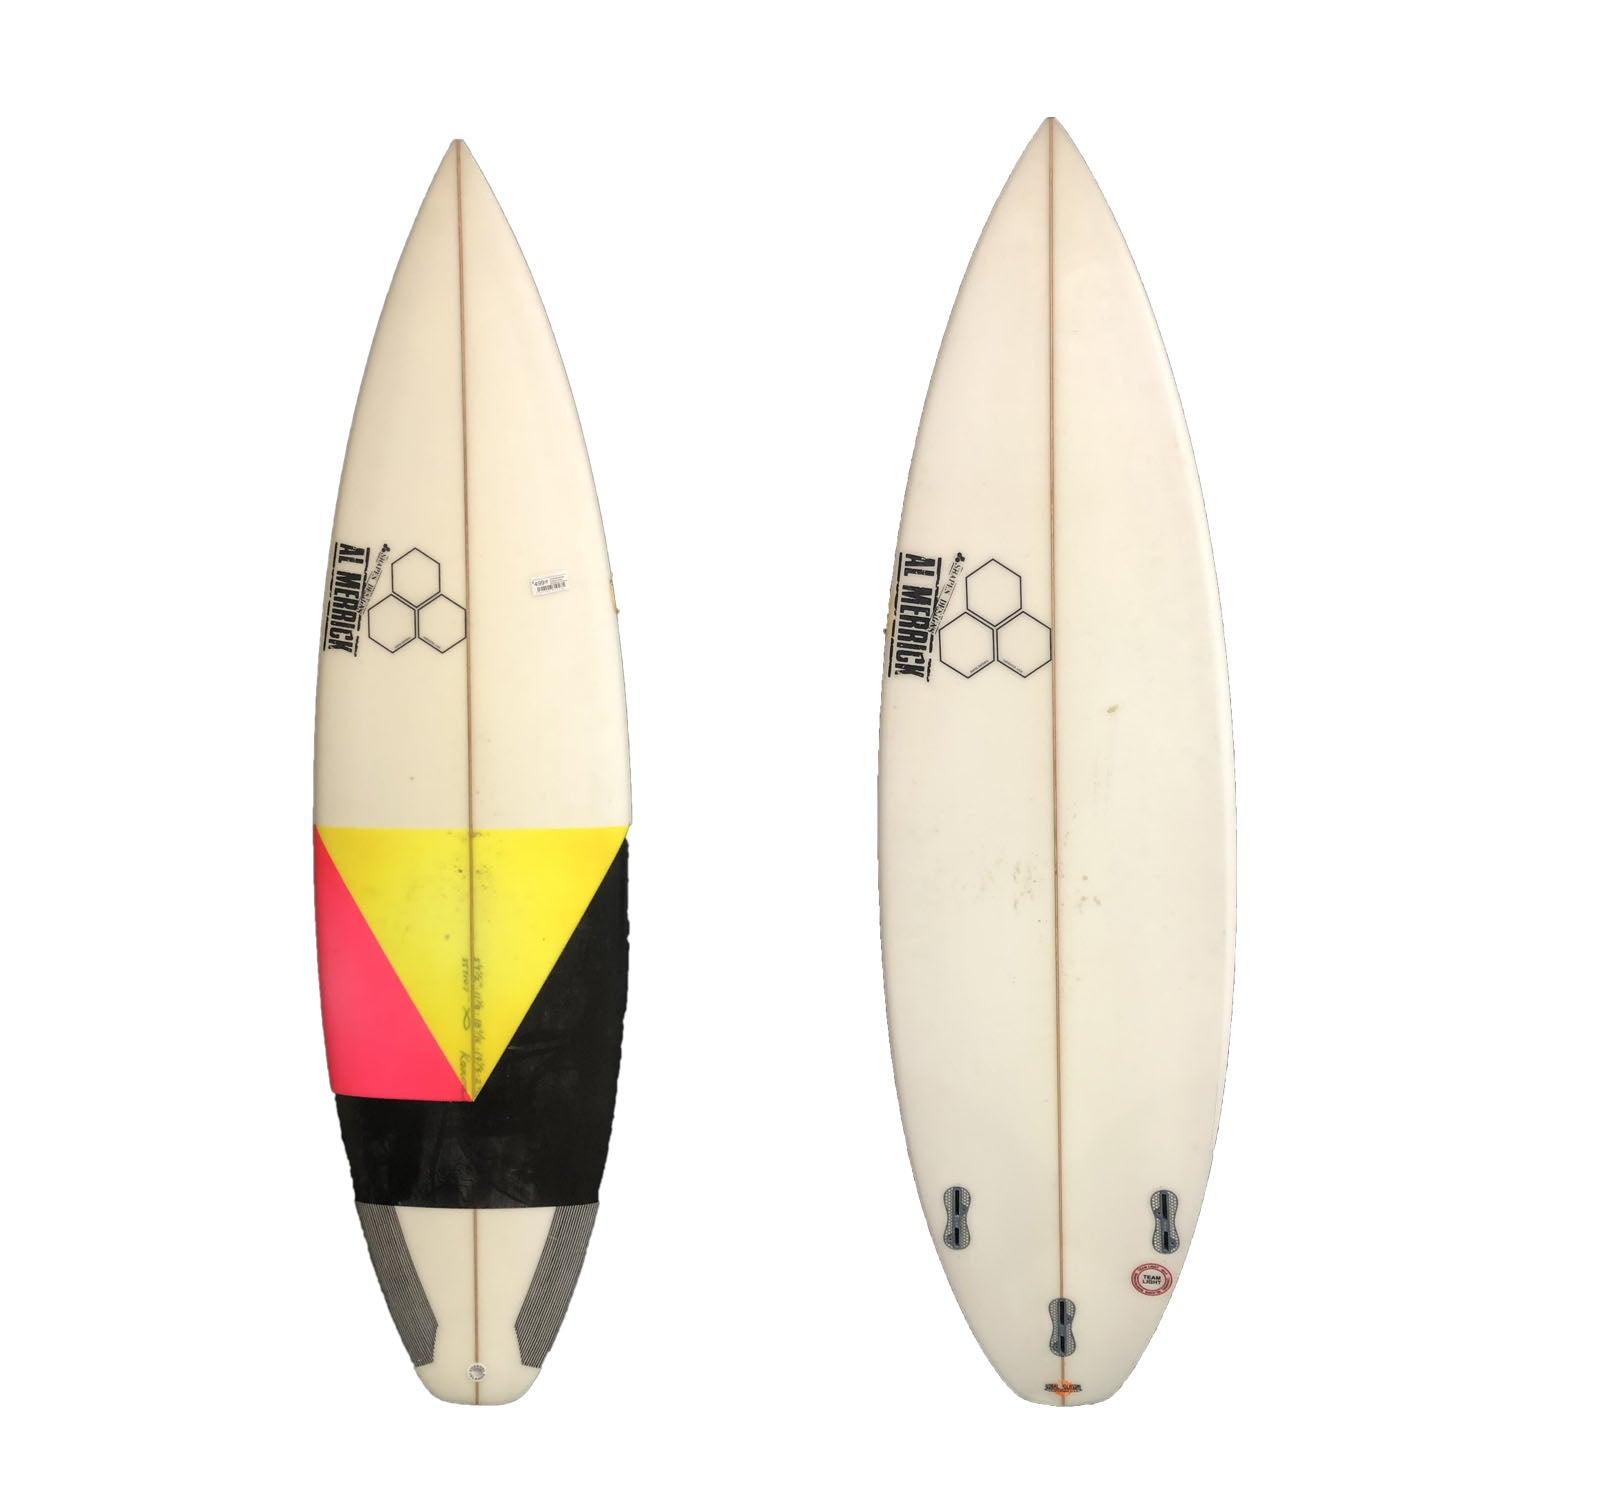 Channel Islands Custom 5'9 1/2 Used Surfboard